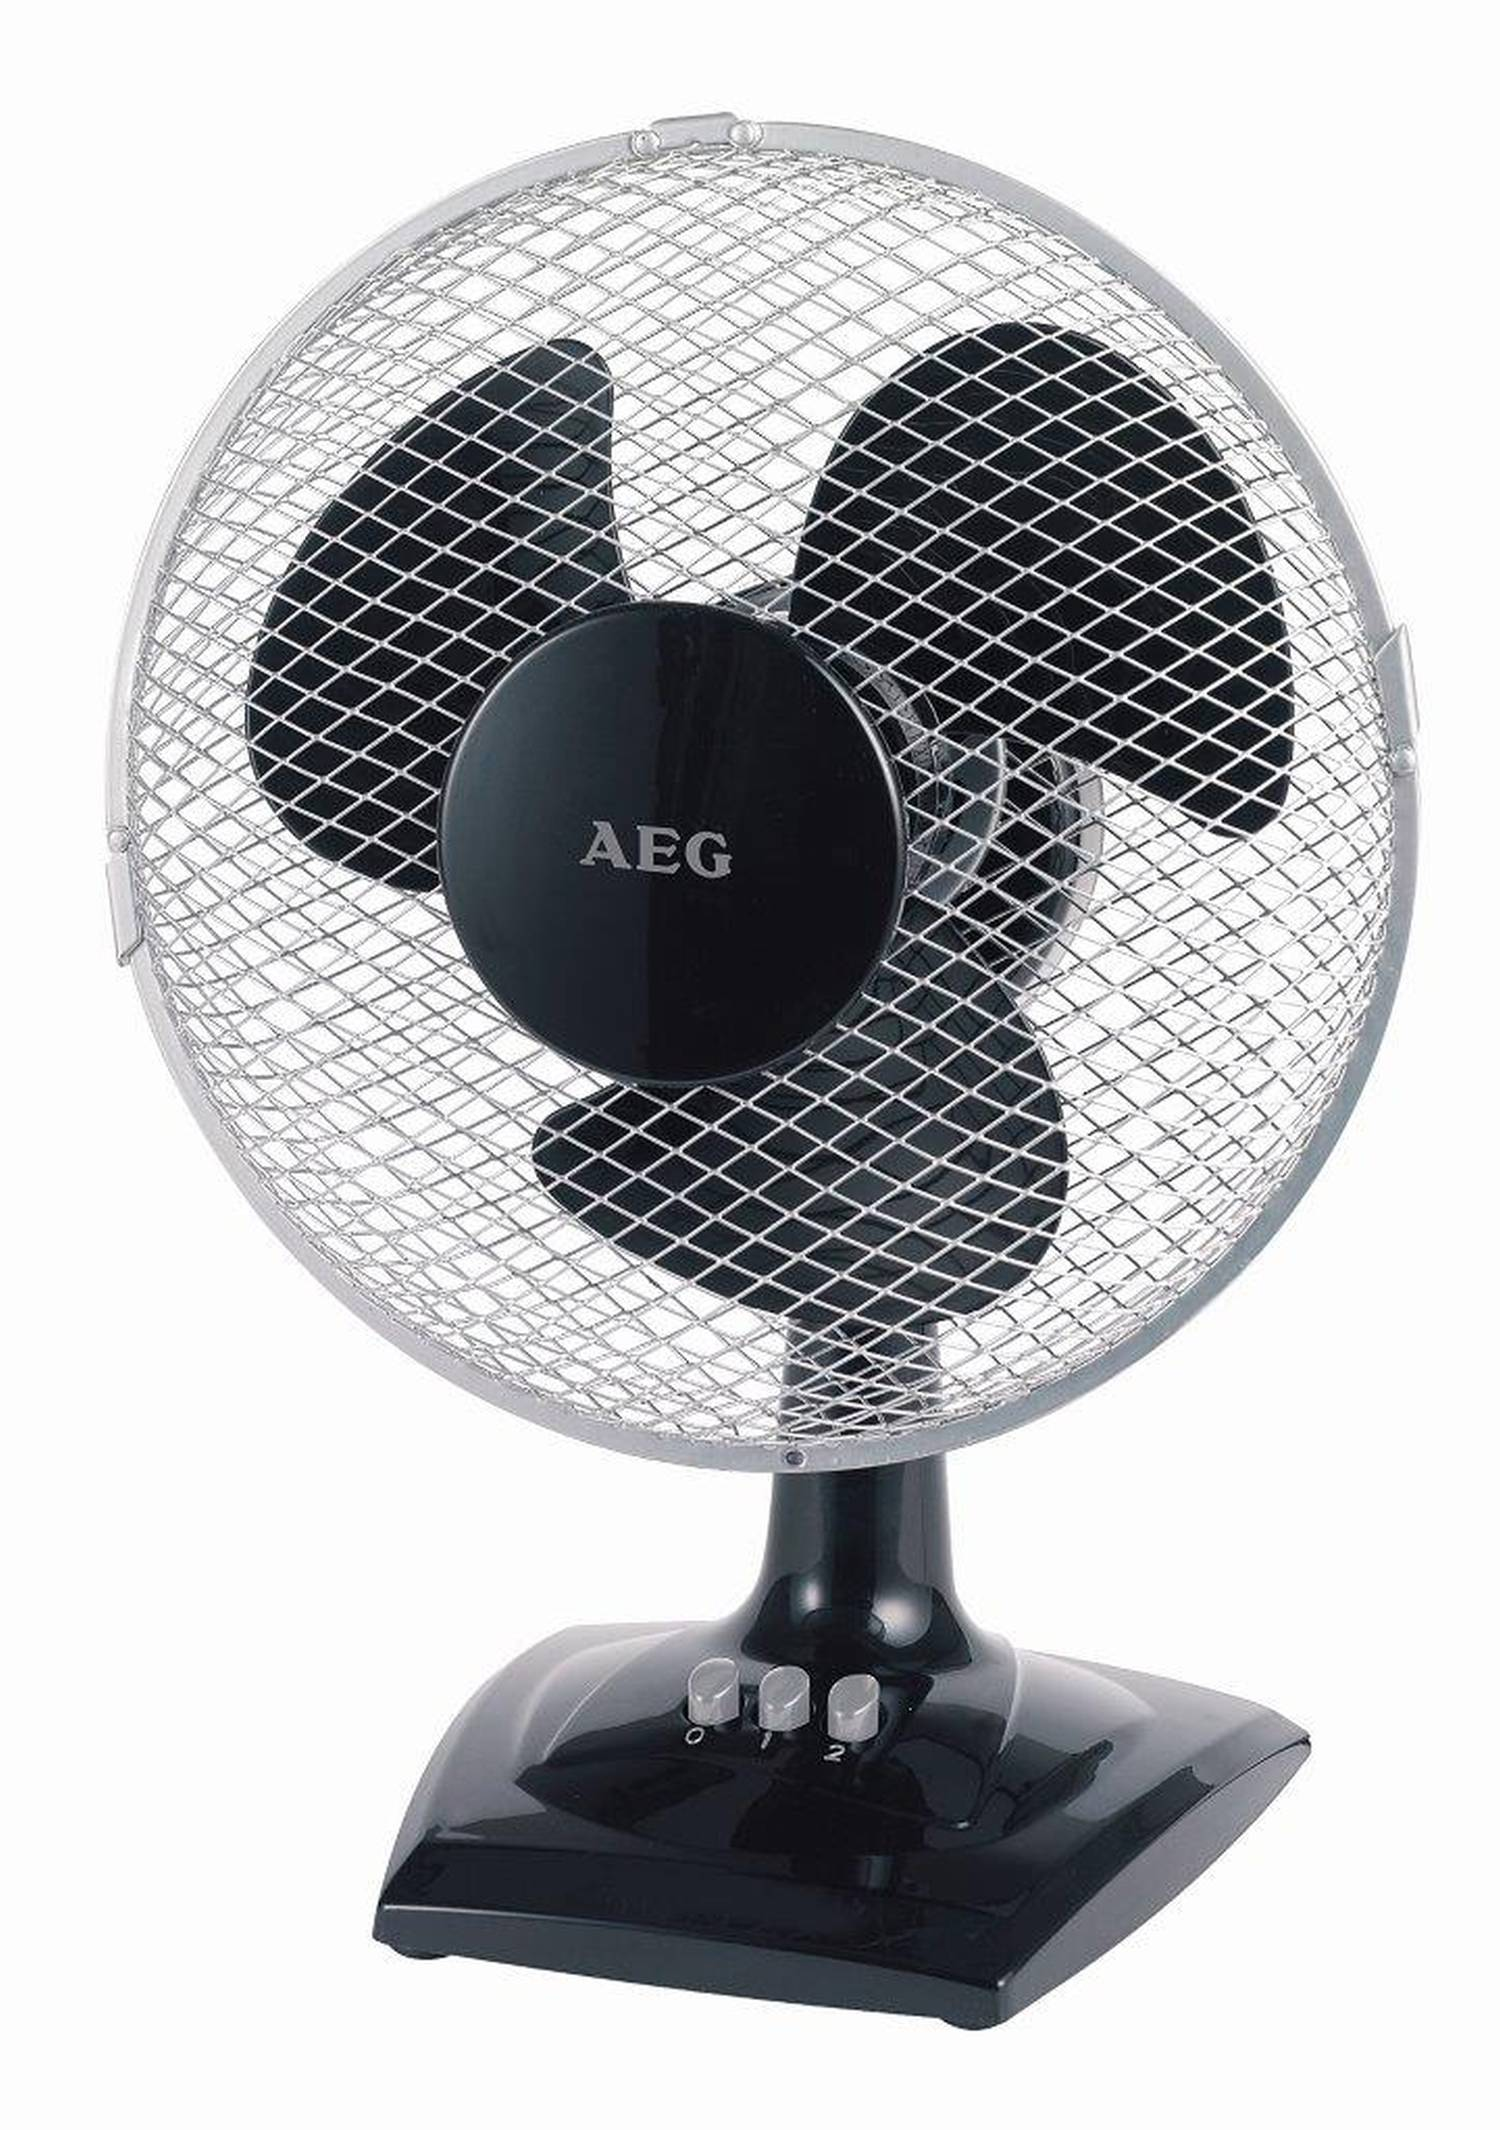 2 in 1 aeg stand ventilator tisch ventilator f r wandmontage 23 cm neu ebay. Black Bedroom Furniture Sets. Home Design Ideas